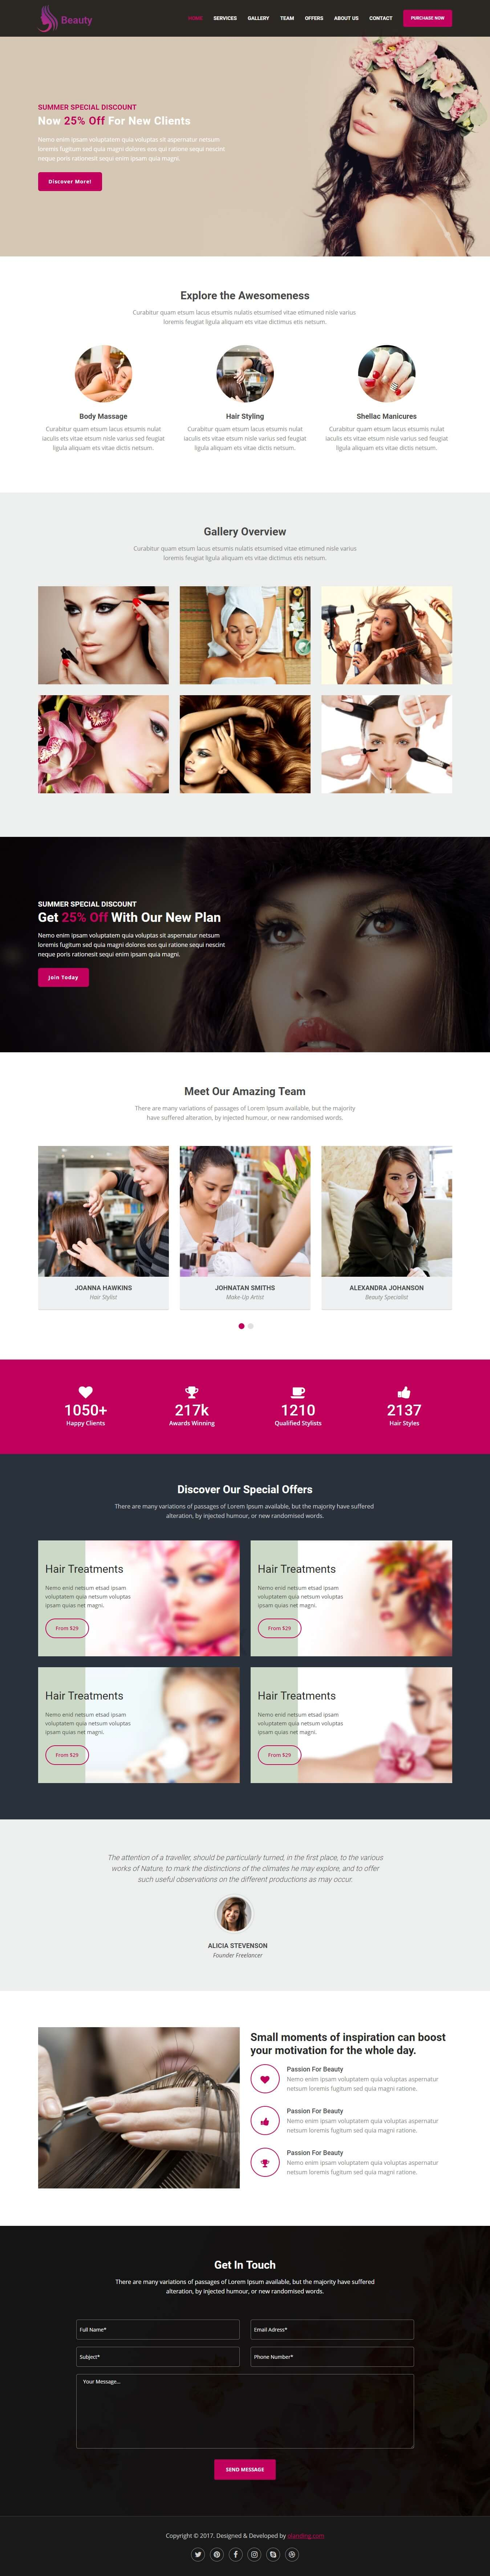 beauty products landing page